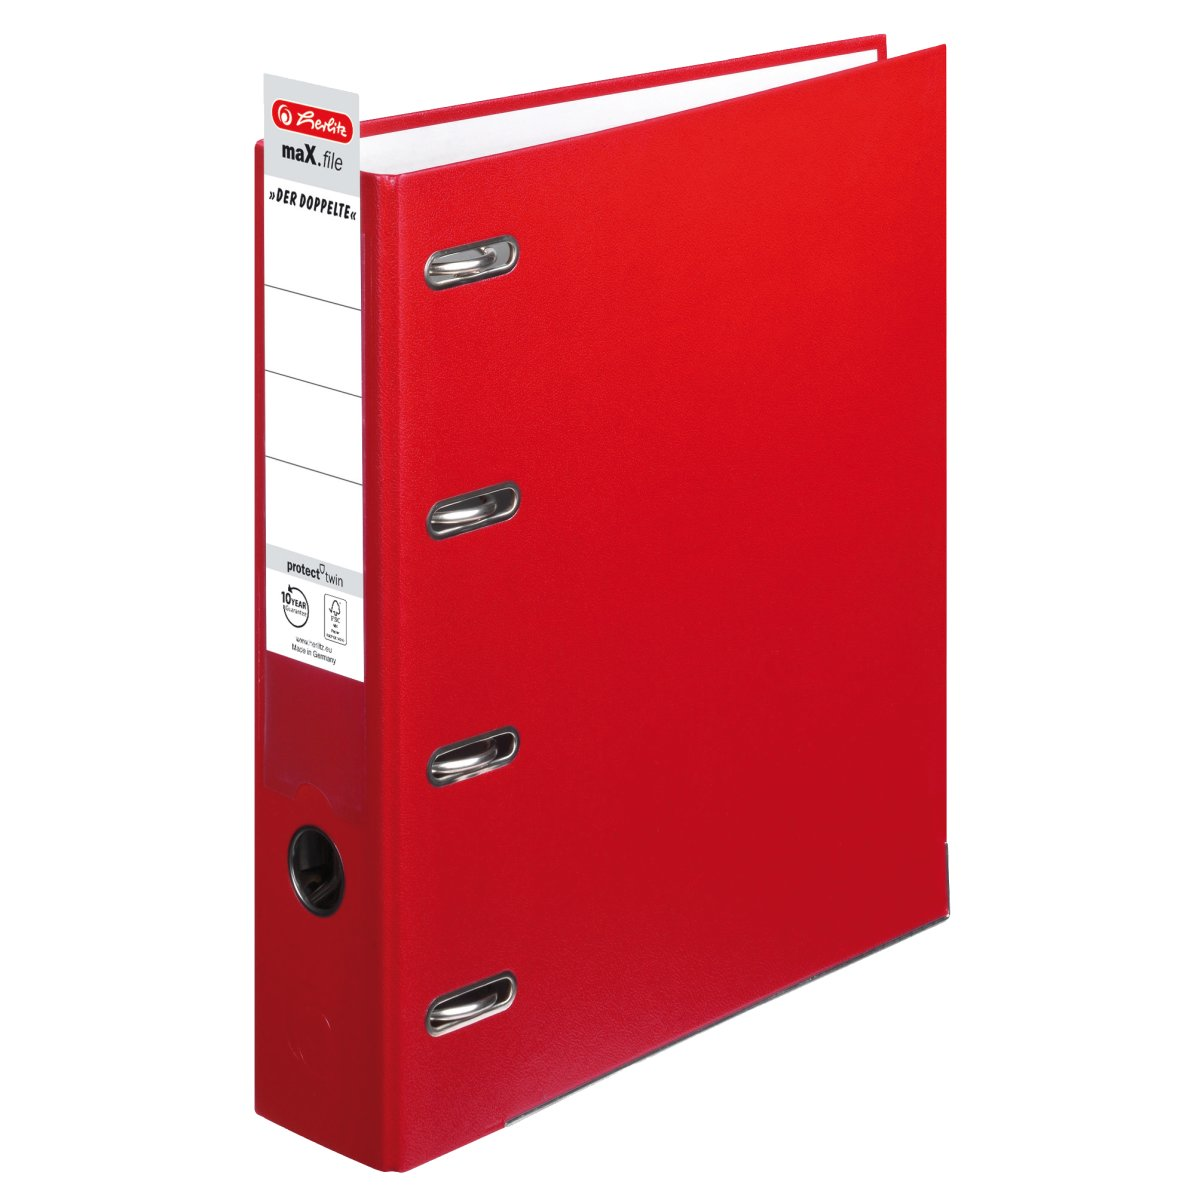 Double Lever Arch File MaX.file Protect A4 7cm Red